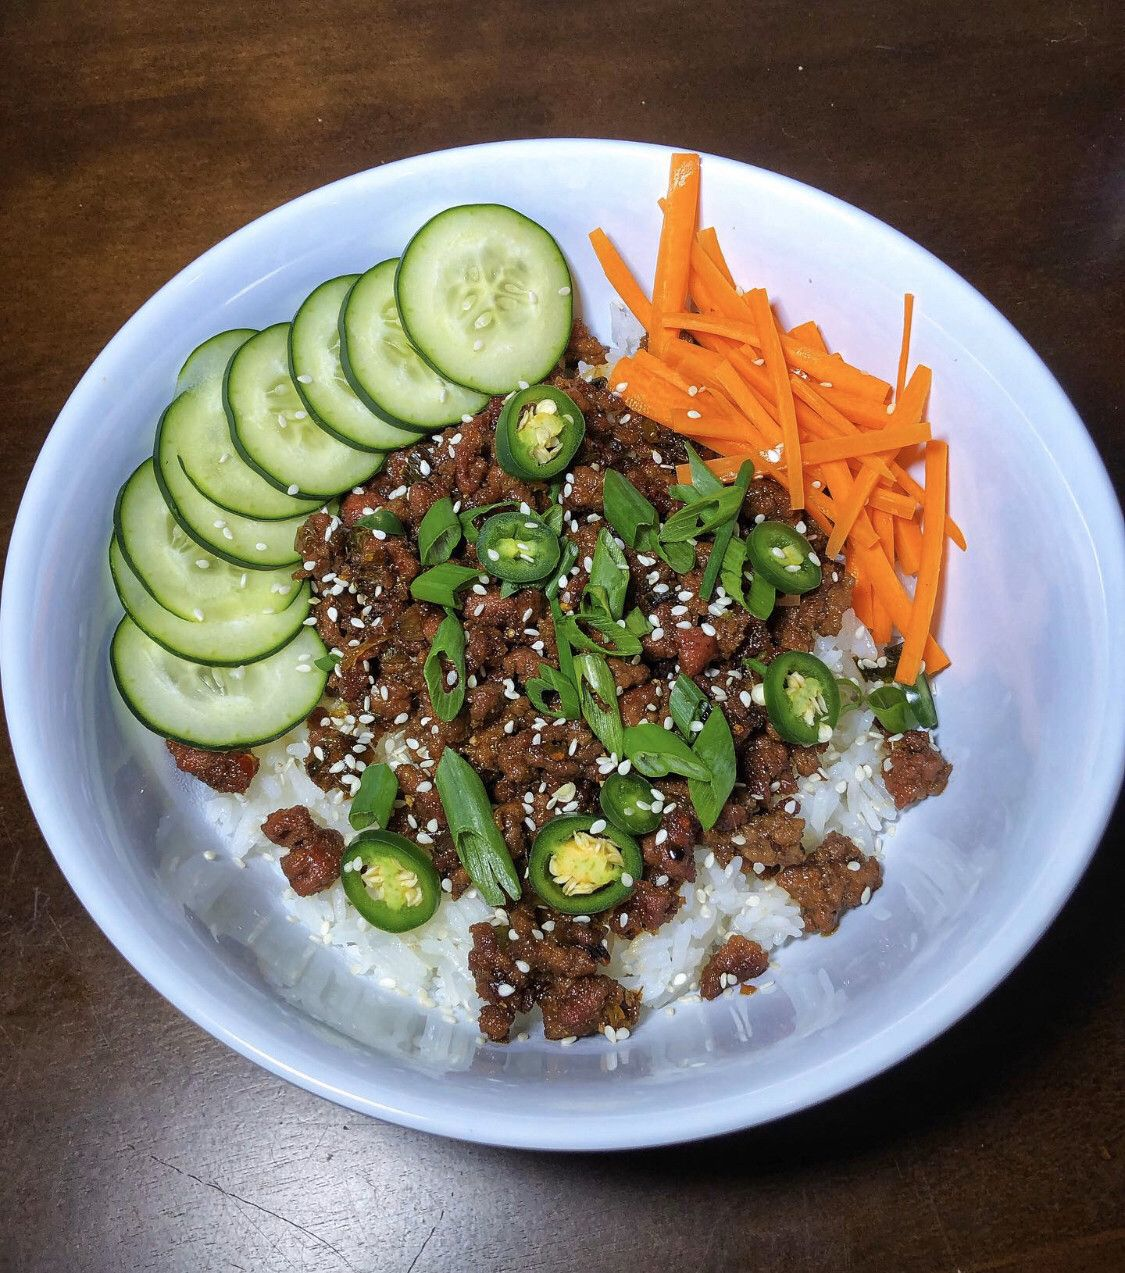 Homemade a spicy Korean inspired beef rice bowl